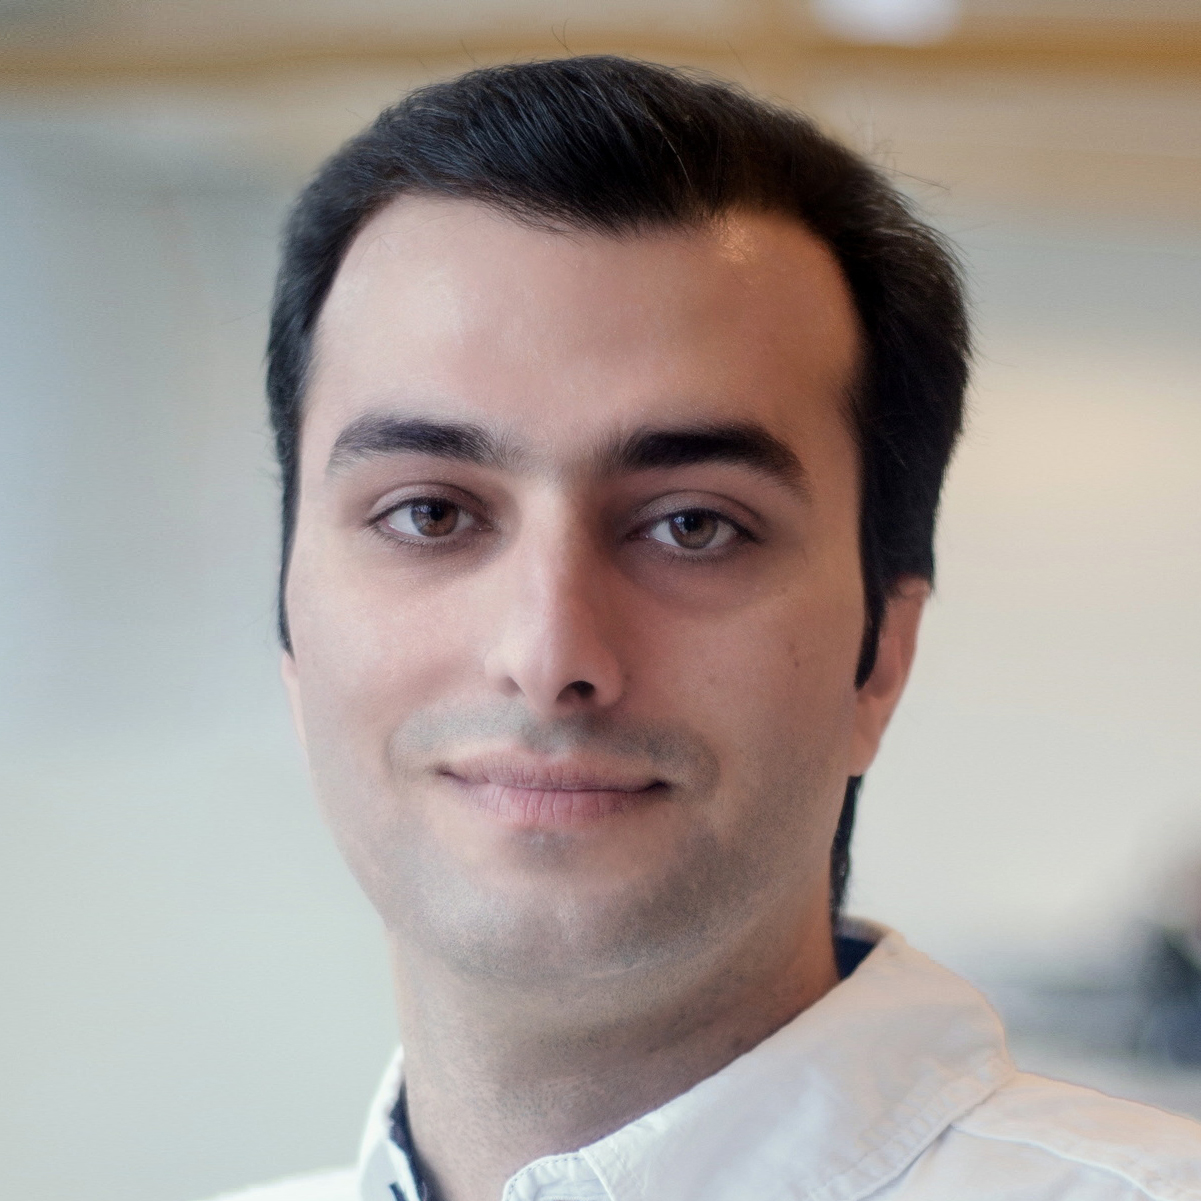 June 17 at 11 a.m.Jalalvand is a senior data scientist at Ghent University-imec, in Belgium, and a visiting postdoc at Plasma Control Group at Princeton University since 2020.  Jalalvand obtained his doctoral degree in 2015 in Artificial Intelligence and continued his career as a permanent postdoctoral researcher at IDLab-UGent-imec. Jalalvand has contributed to over 20 (inter-)national projects, leveraging fundamental and applied research in diverse data analysis directions such as pathological speech/image processing, radar signal processing, bioinformatics, anomaly detection, and predictive maintenance.  In 2020, he was awarded a 3-year special postdoctoral fellowship at UGent-BOF to investigate data-driven models for condition monitoring and plasma control in the magnetic confinement devices to produce controlled thermonuclear fusion power.